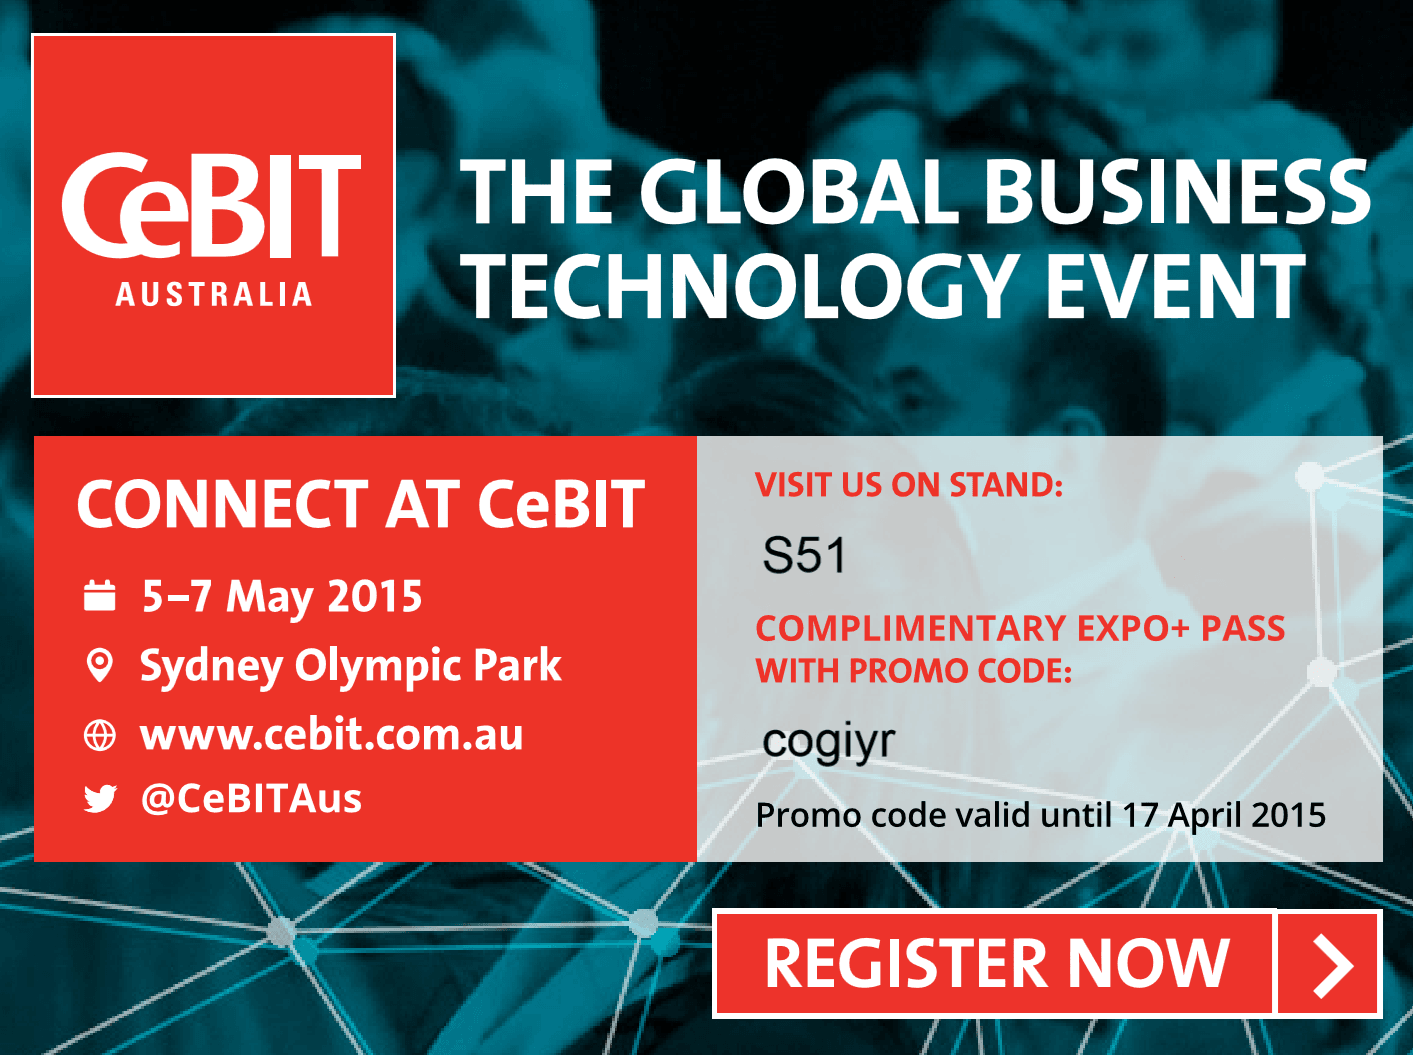 Cogito is exhibiting at CeBIT 2015